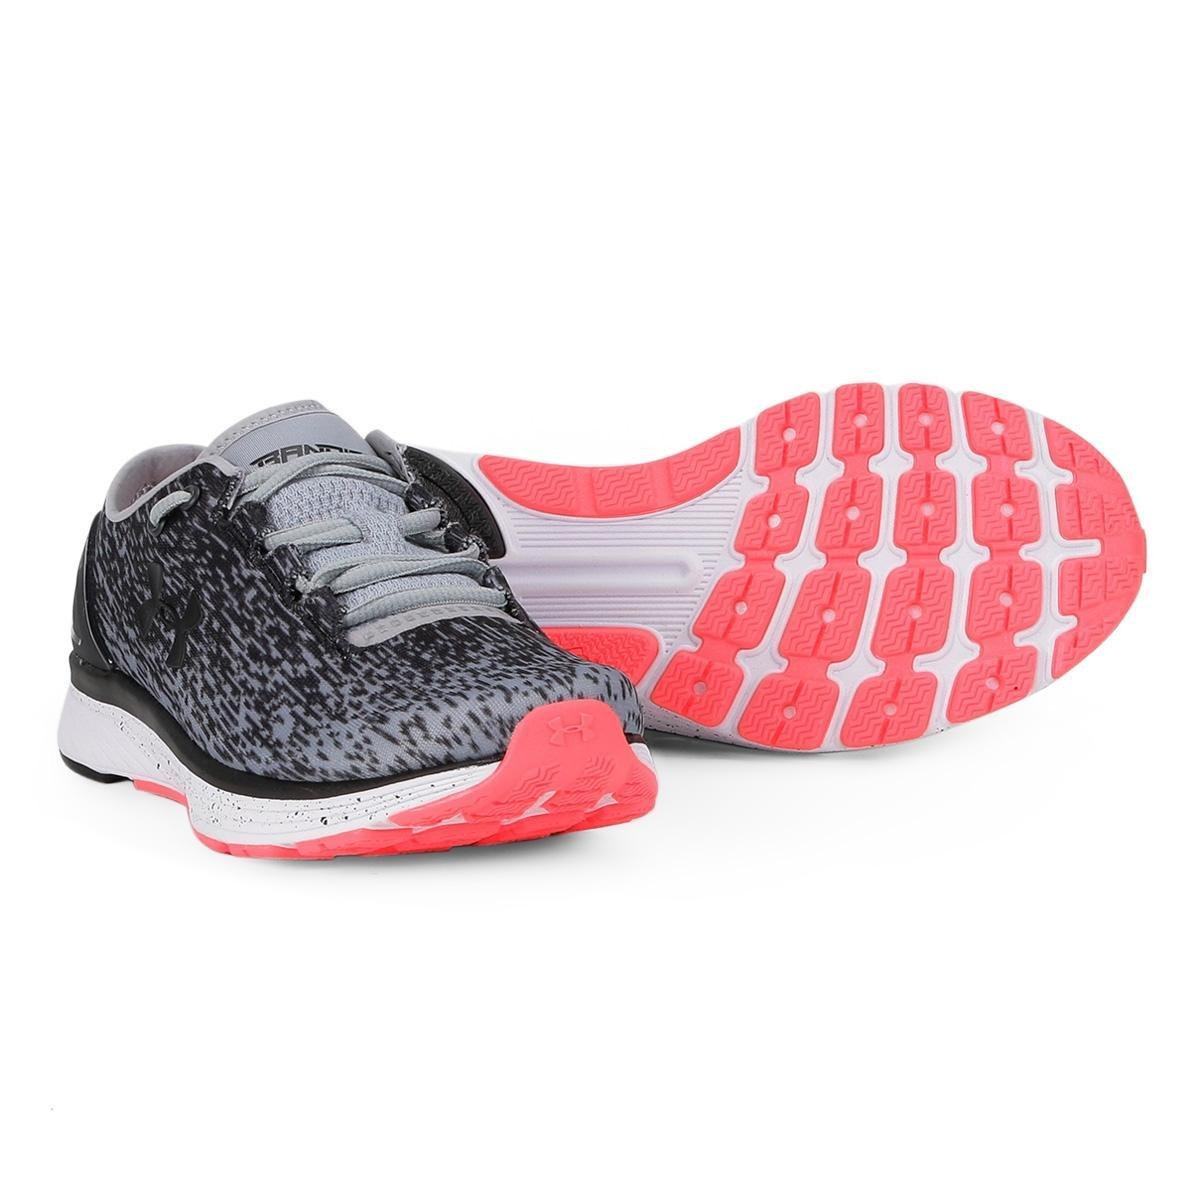 best value 0c51c 899af Tênis Under Armour Bandit 3 Ombre Feminino - Cinza